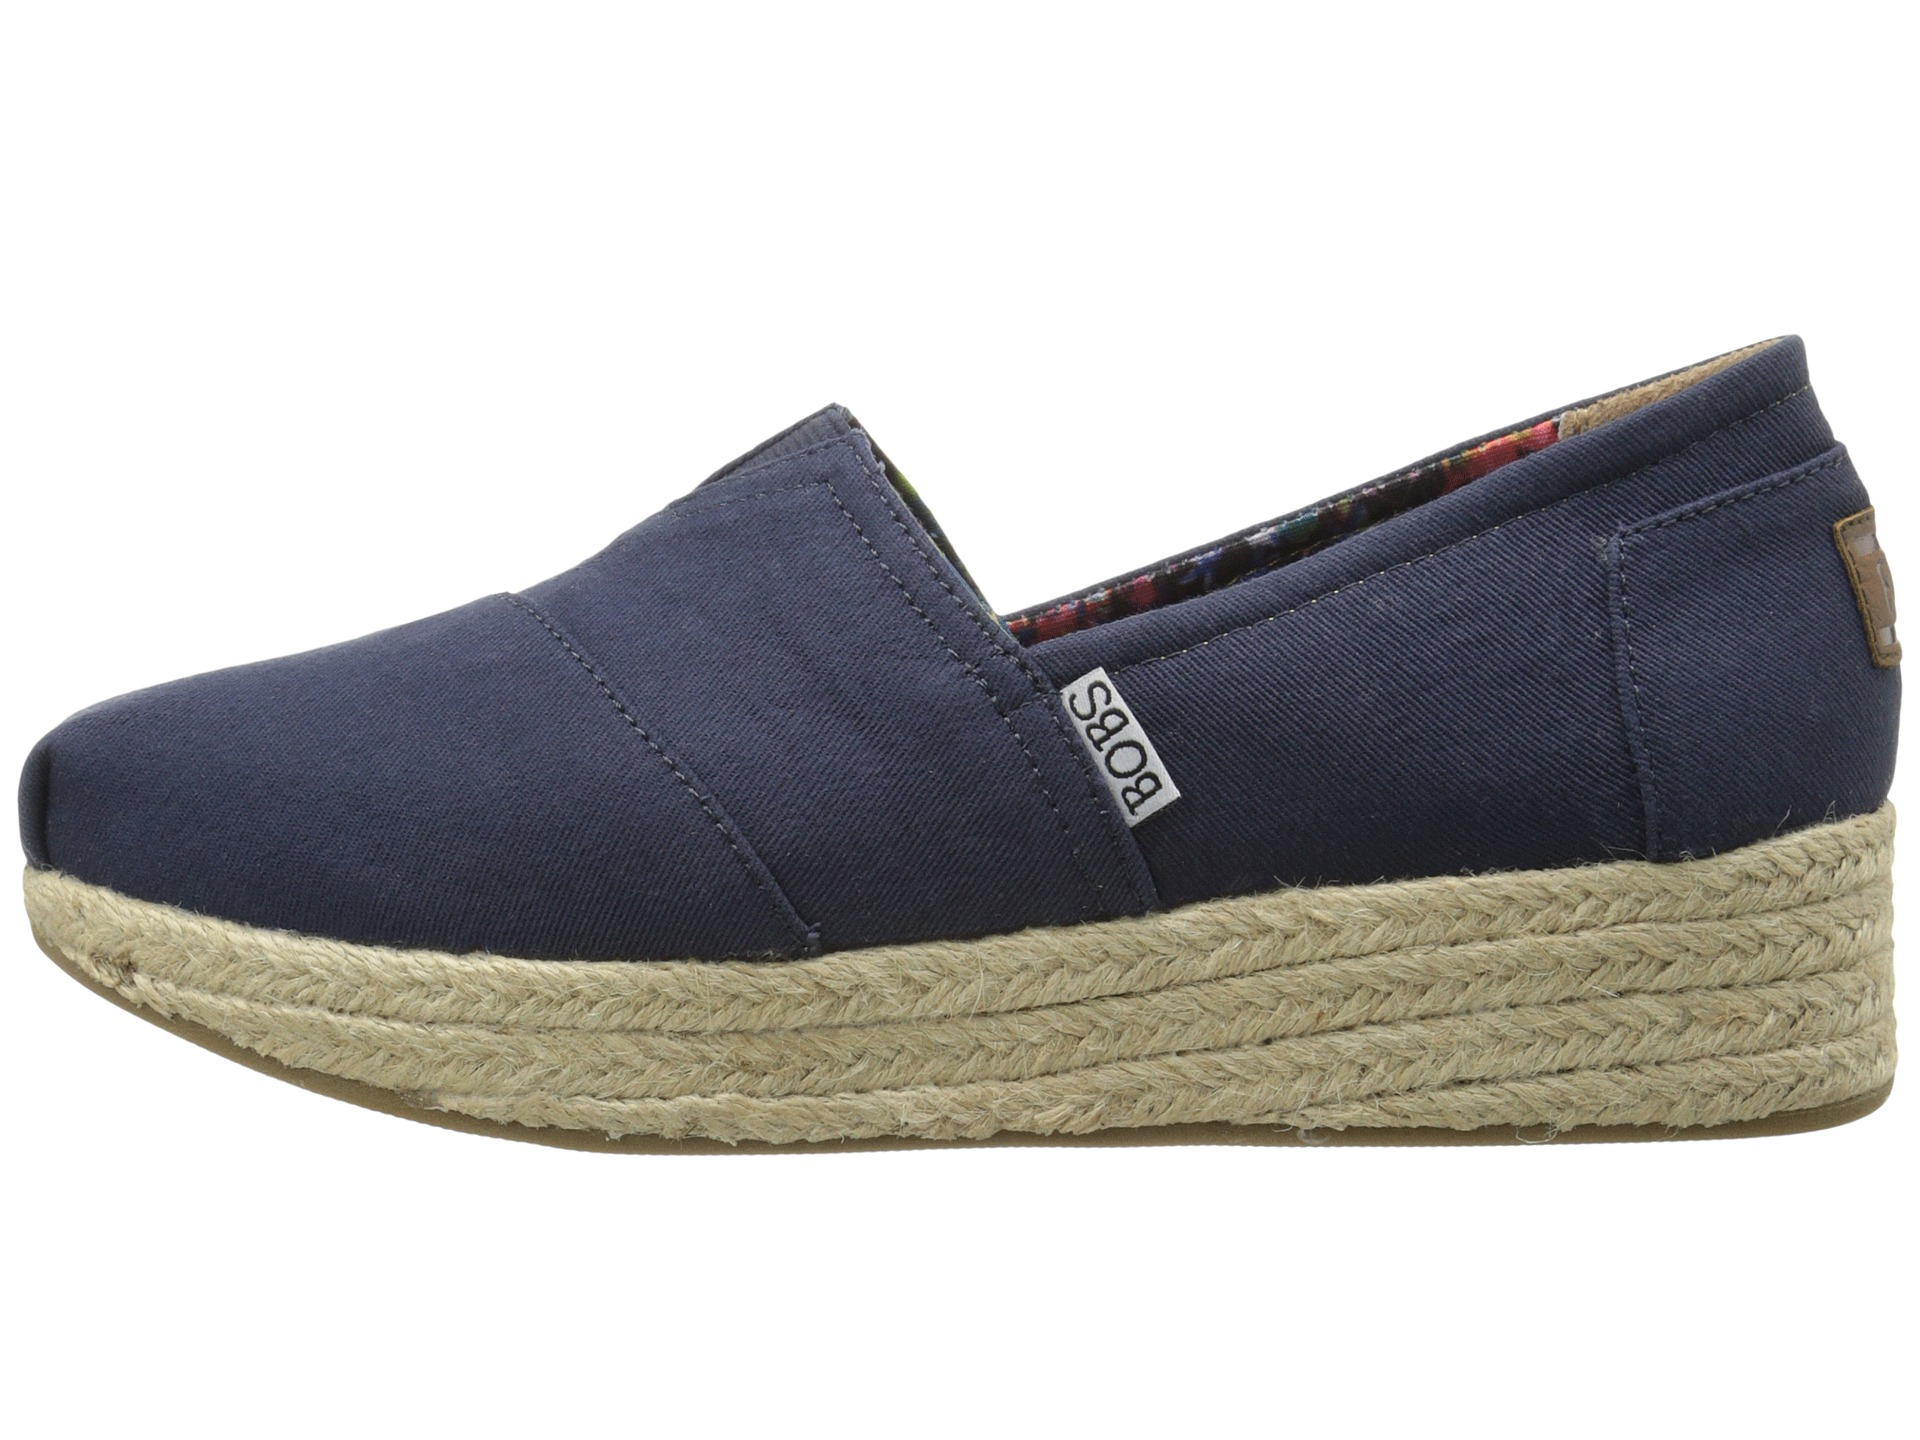 BOBS From SKECHERS Wedge Espadrille Memory Foam - Zappos.com Free Shipping BOTH Ways